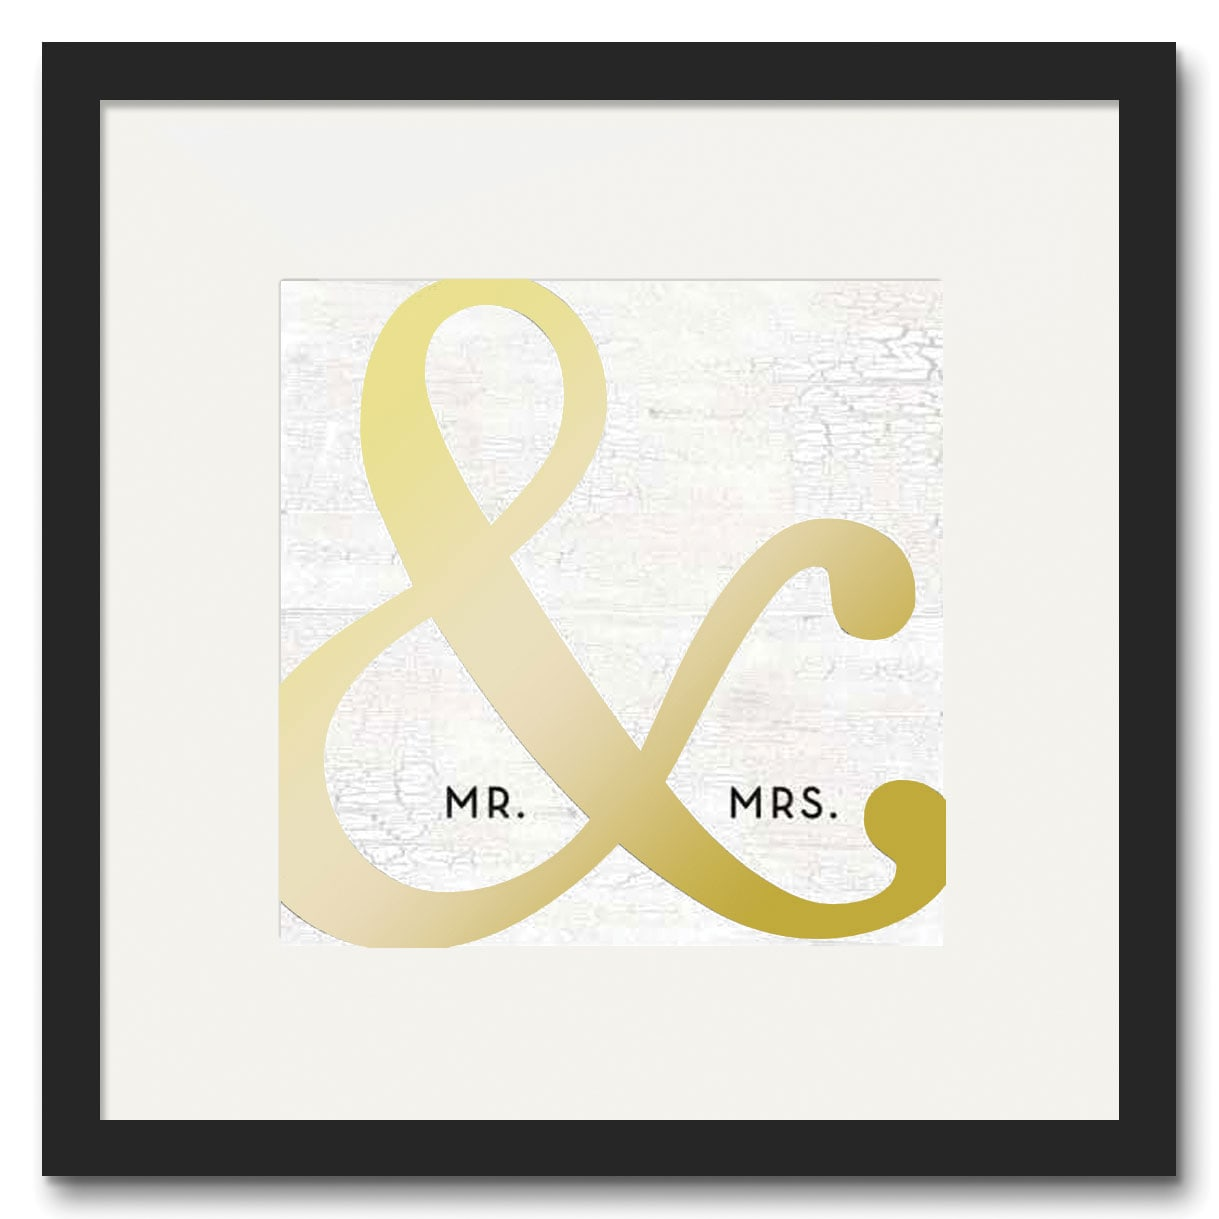 "Mr. & Mrs. Canvas Art (16"" X 20"")"